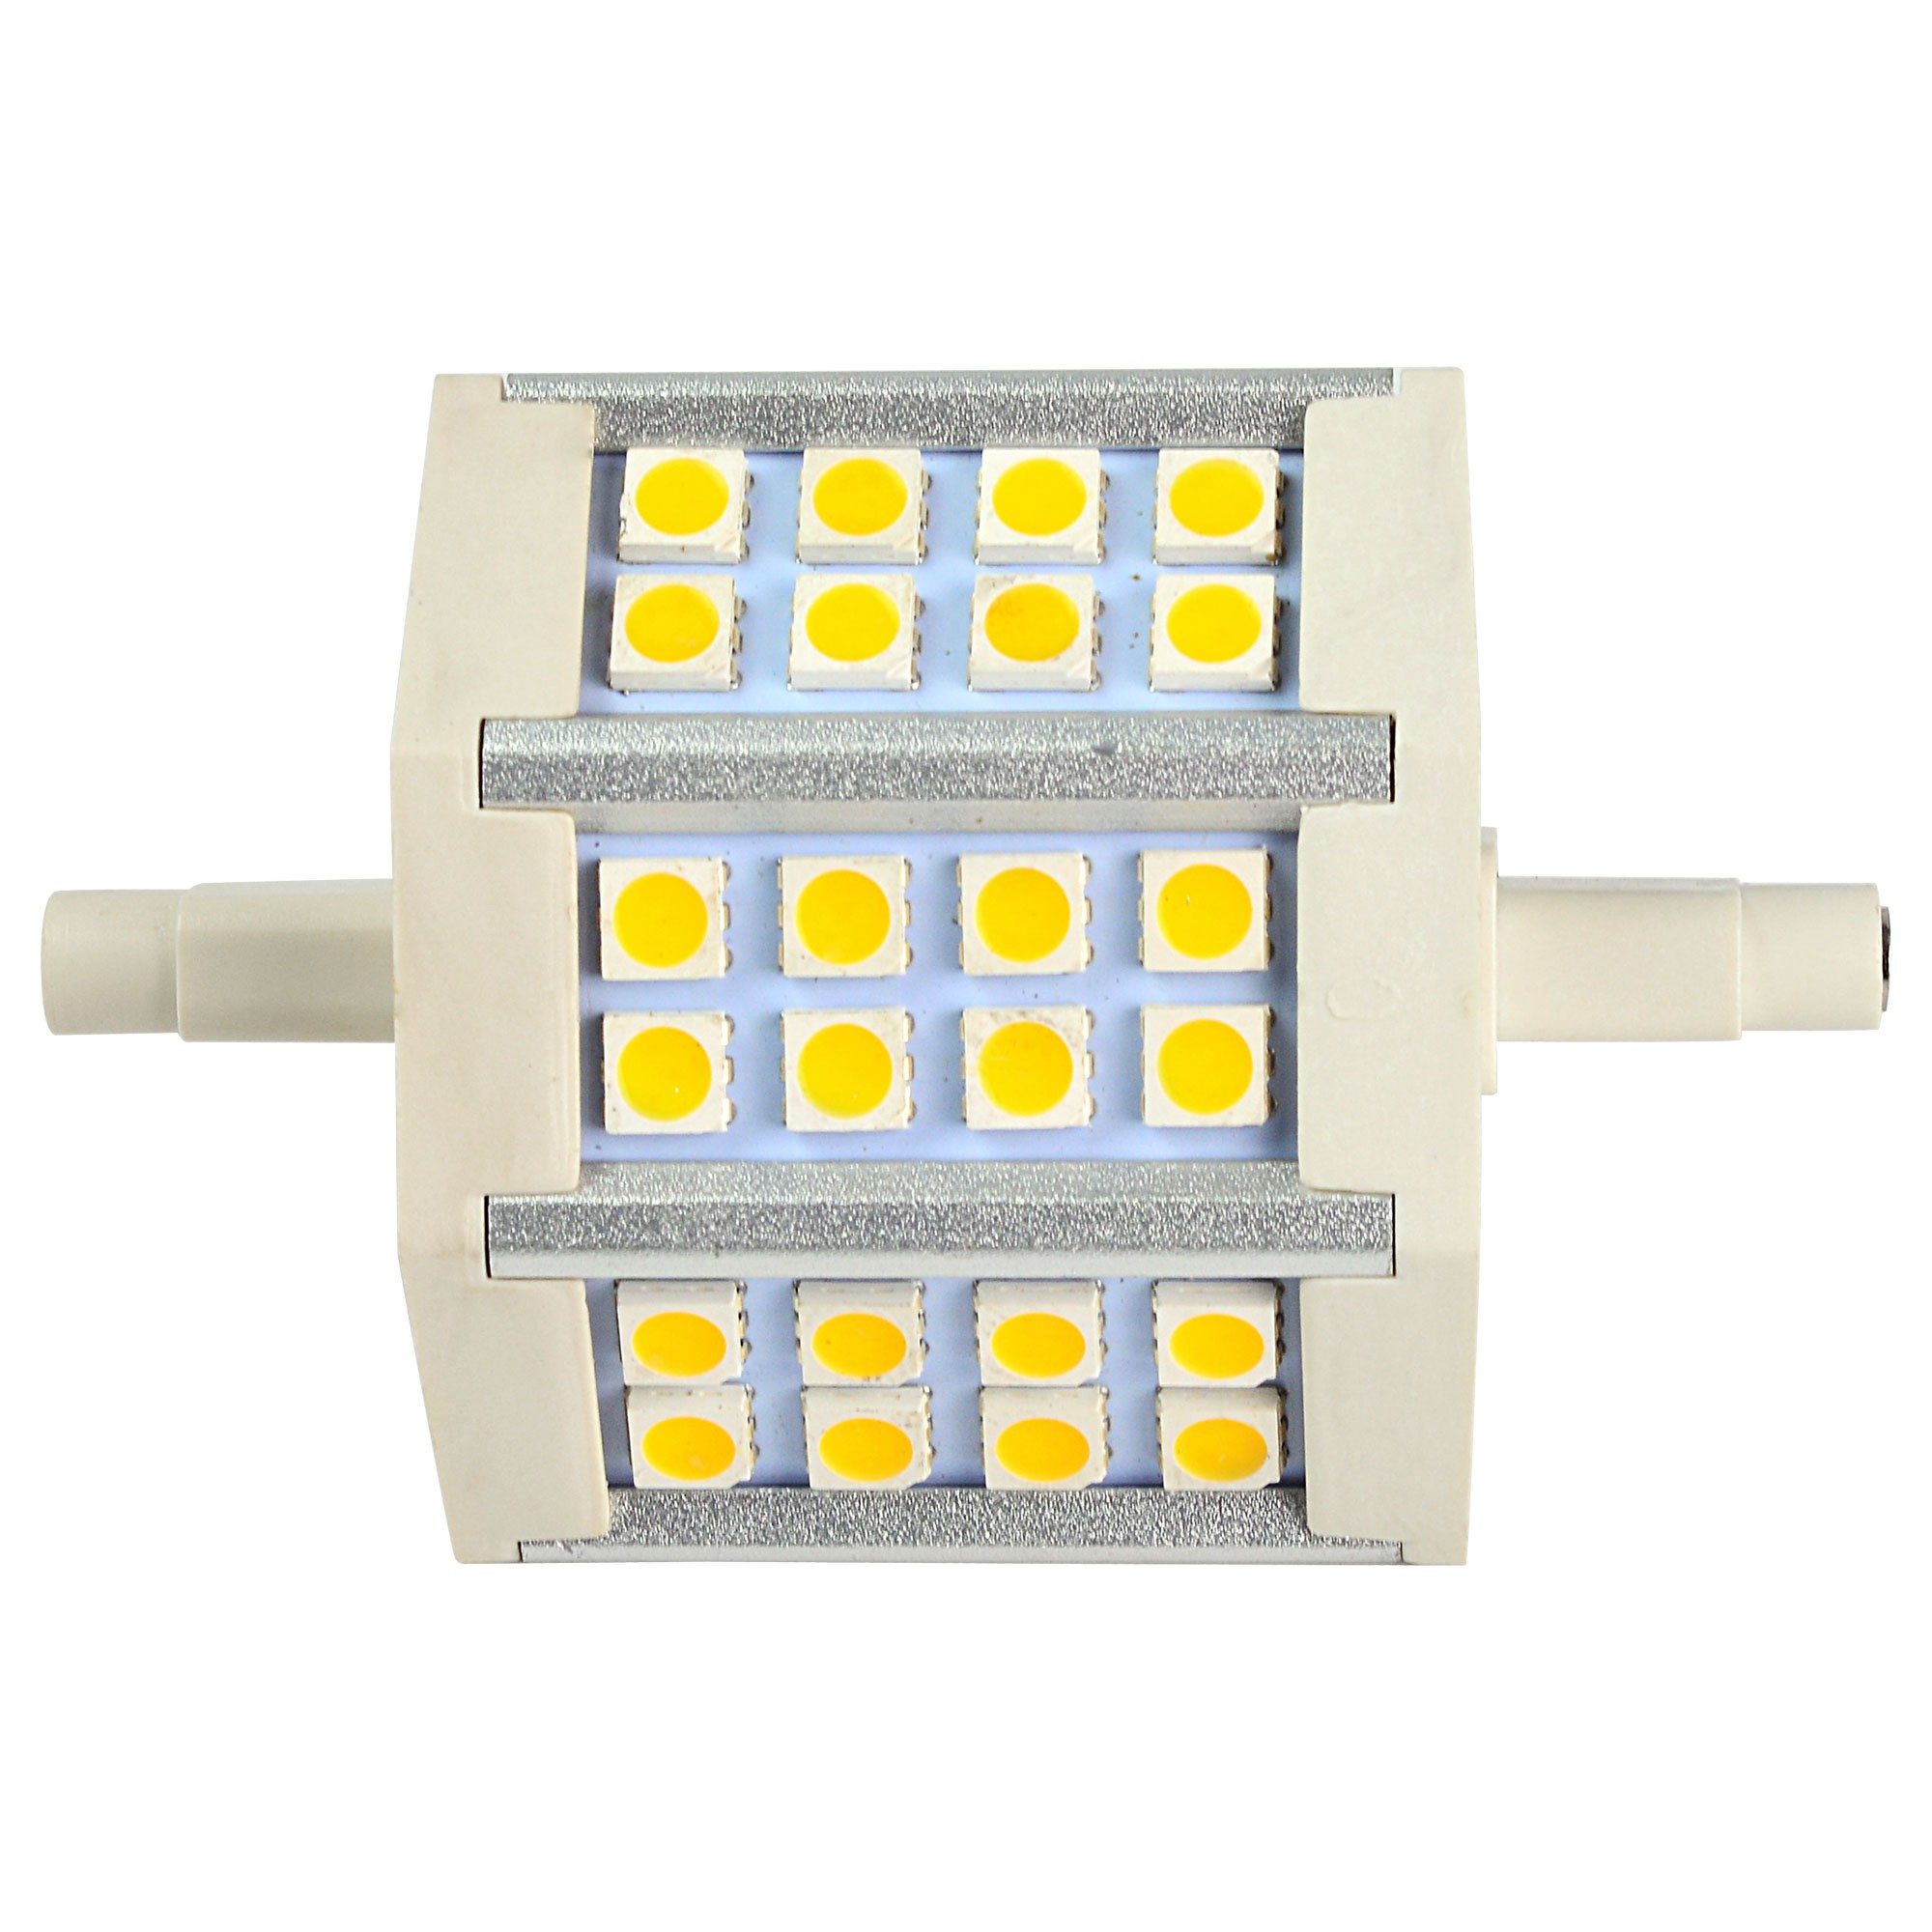 Mengsled Mengs R7s 5w Led Light 24x 5050 Smd Leds Led